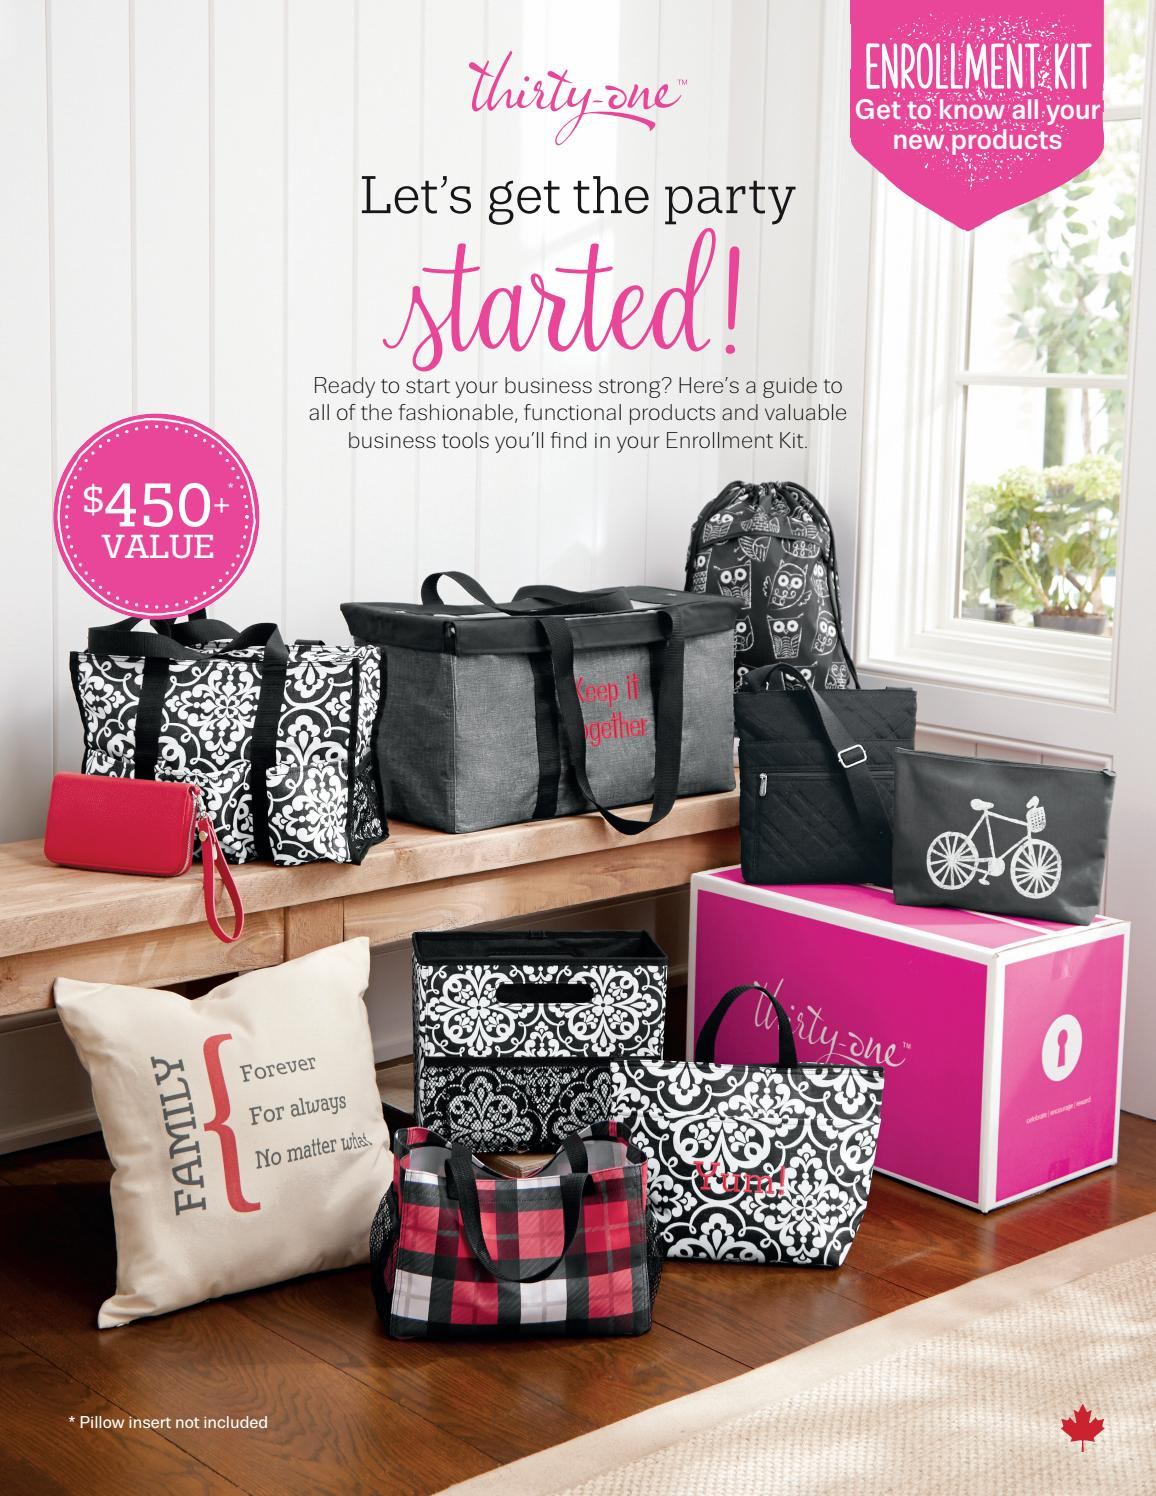 Thirty one enrollment kit flyer fall 2016 canadian edition by thirty one enrollment kit flyer fall 2016 canadian edition by lornapasinato issuu magicingreecefo Image collections